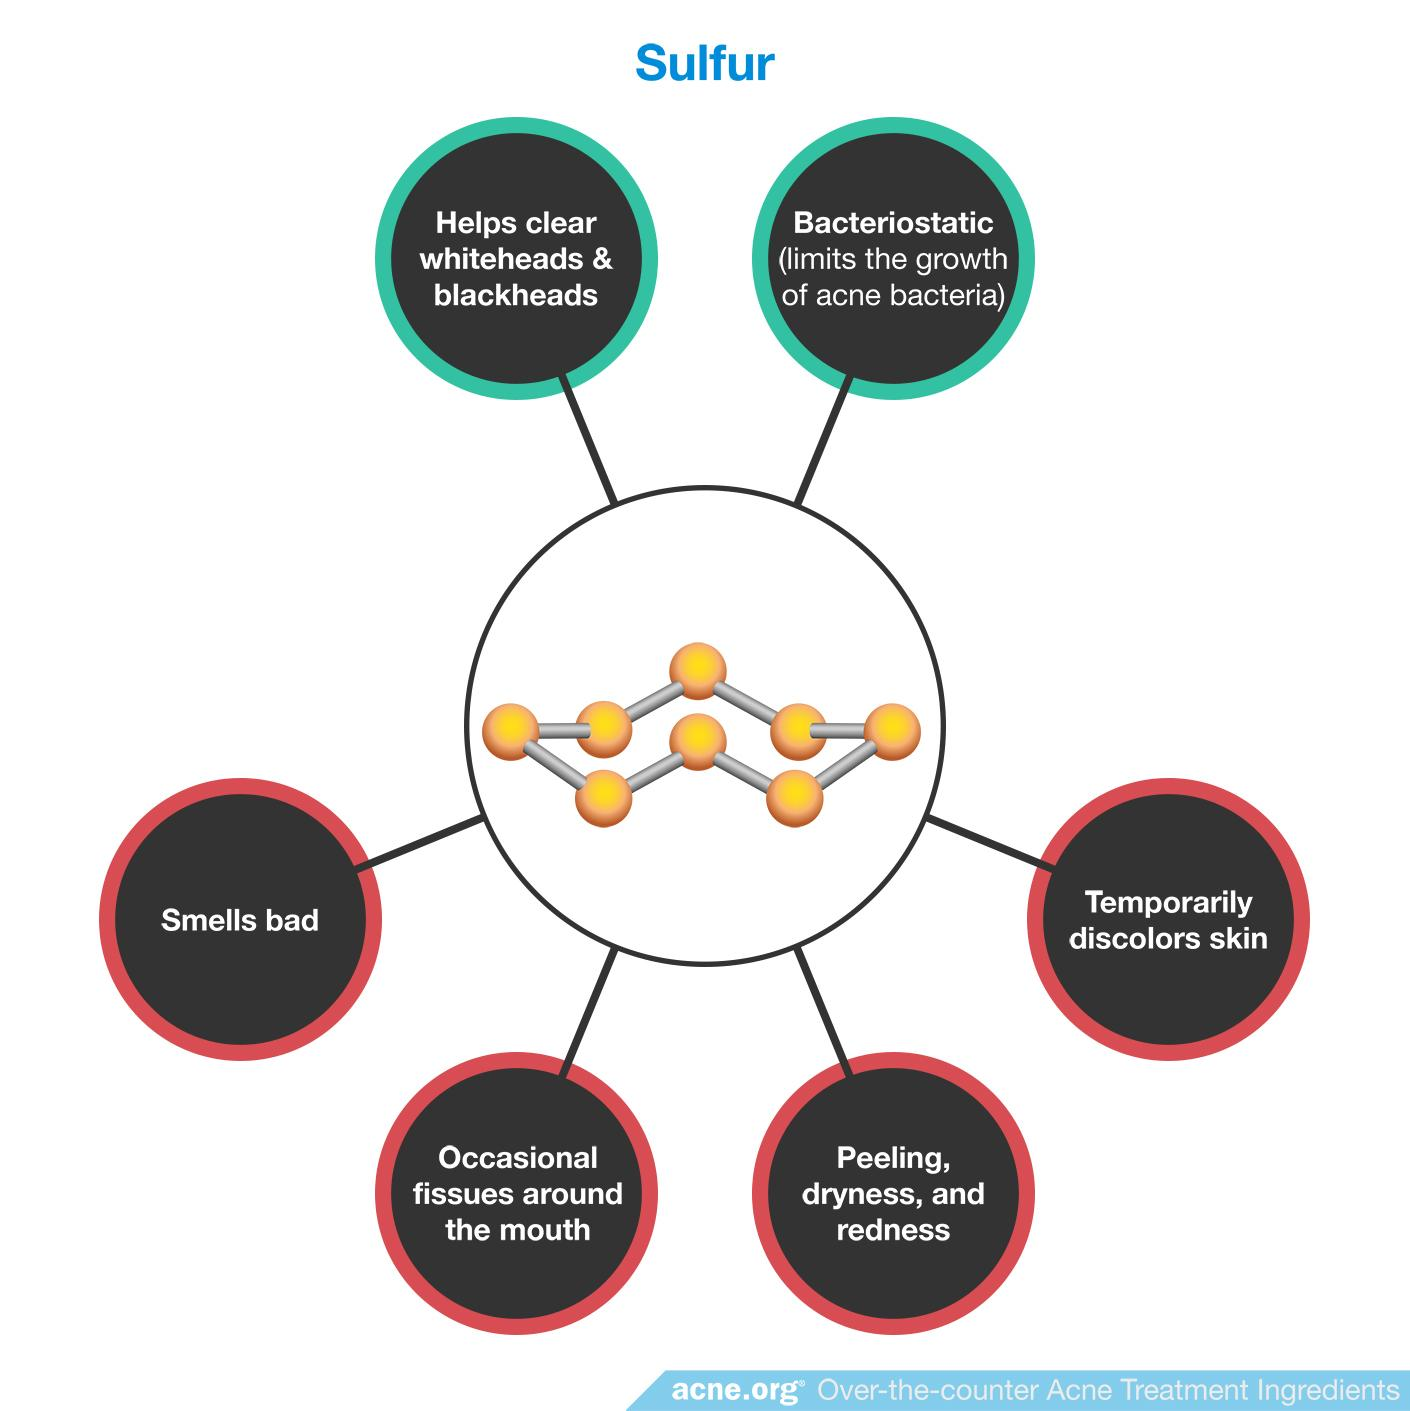 Sulfur Effects in the Skin